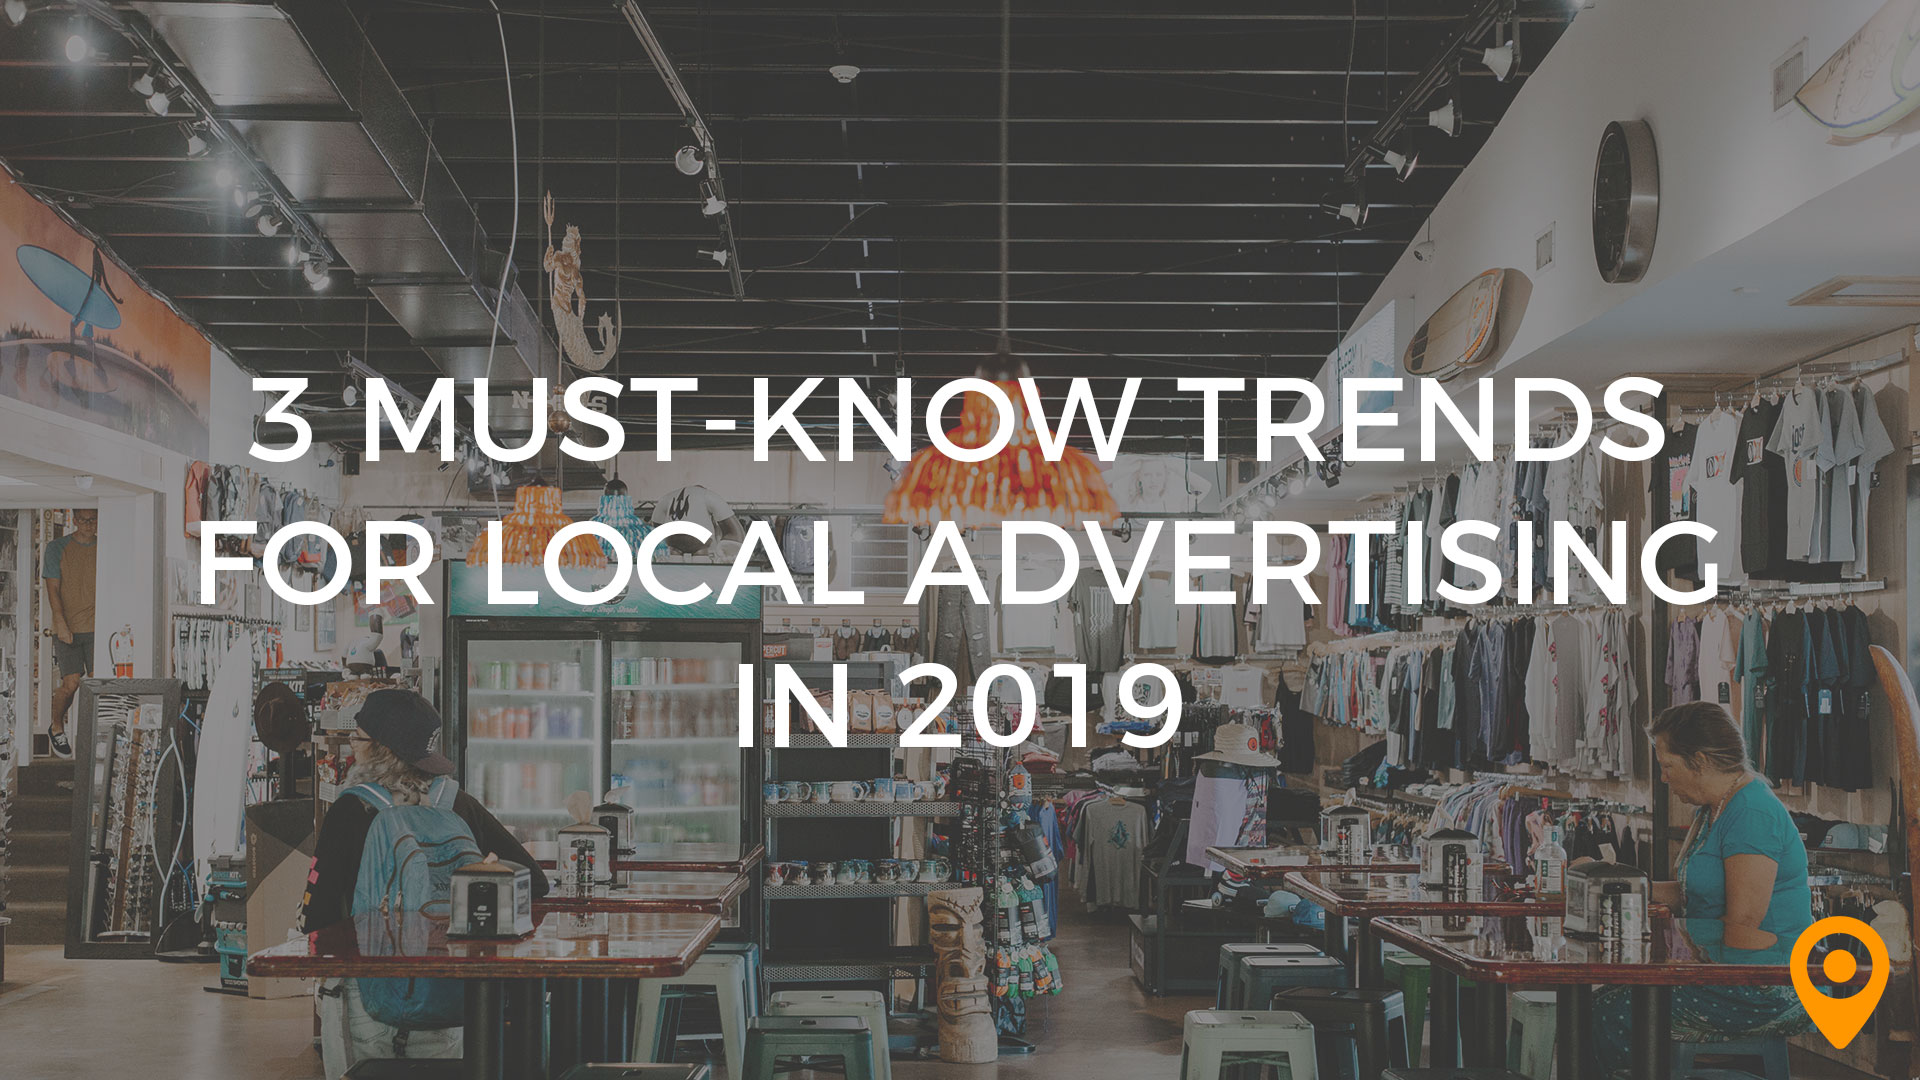 3 Must Know Trends for Local Advertising in 2019